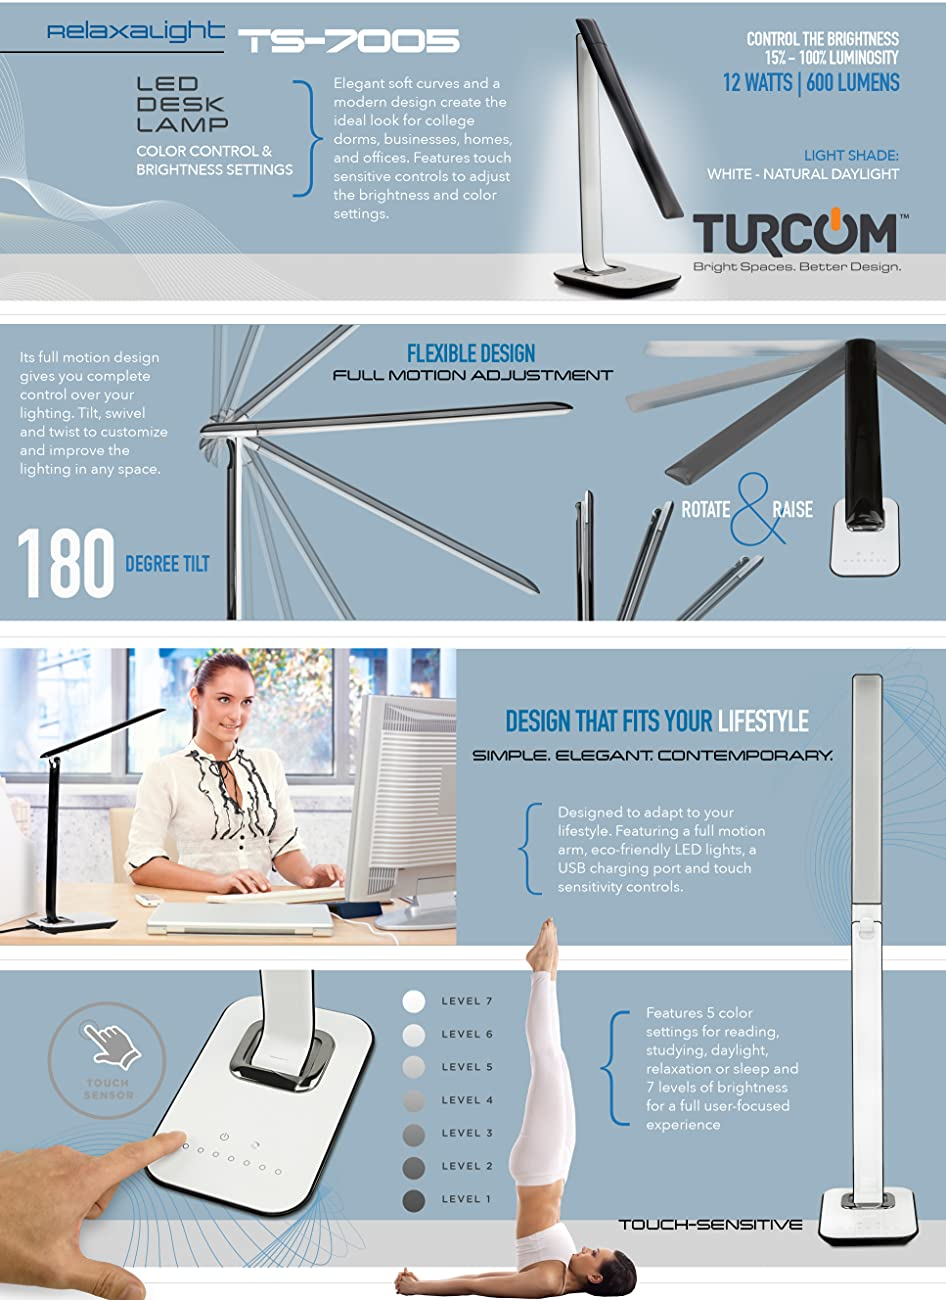 Turcom RelaxaLight LED Desk Lamp, Table Lamp, Dimmable, USB Ports For  Chargers, Touch Sensors, Eye Protective, Natural White Light To Classic  Orange For ...